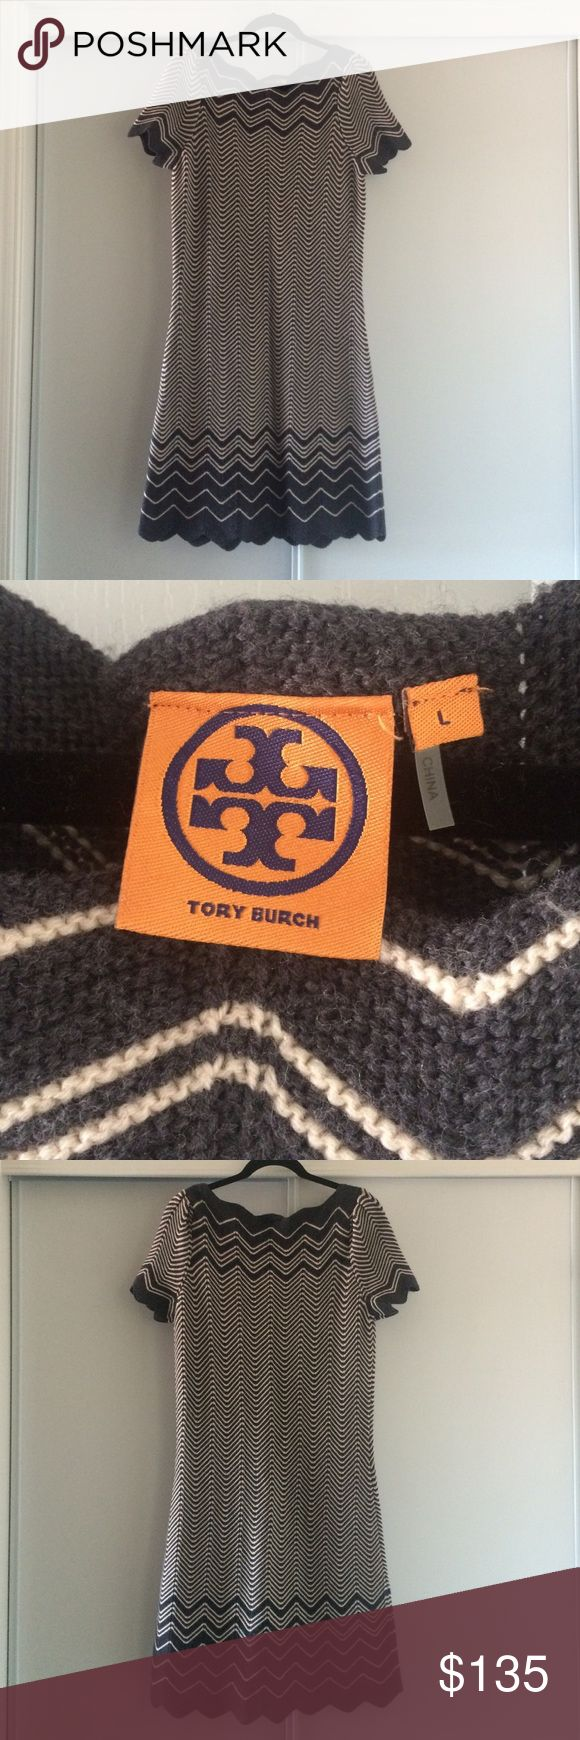 "Tory Burch Zig Zag Large Knit Sheath Dress Excellent condition. Worn once. 100% Merino Wool. SZ L. Bust 18"" Length 37"" Tory Burch Dresses Midi"